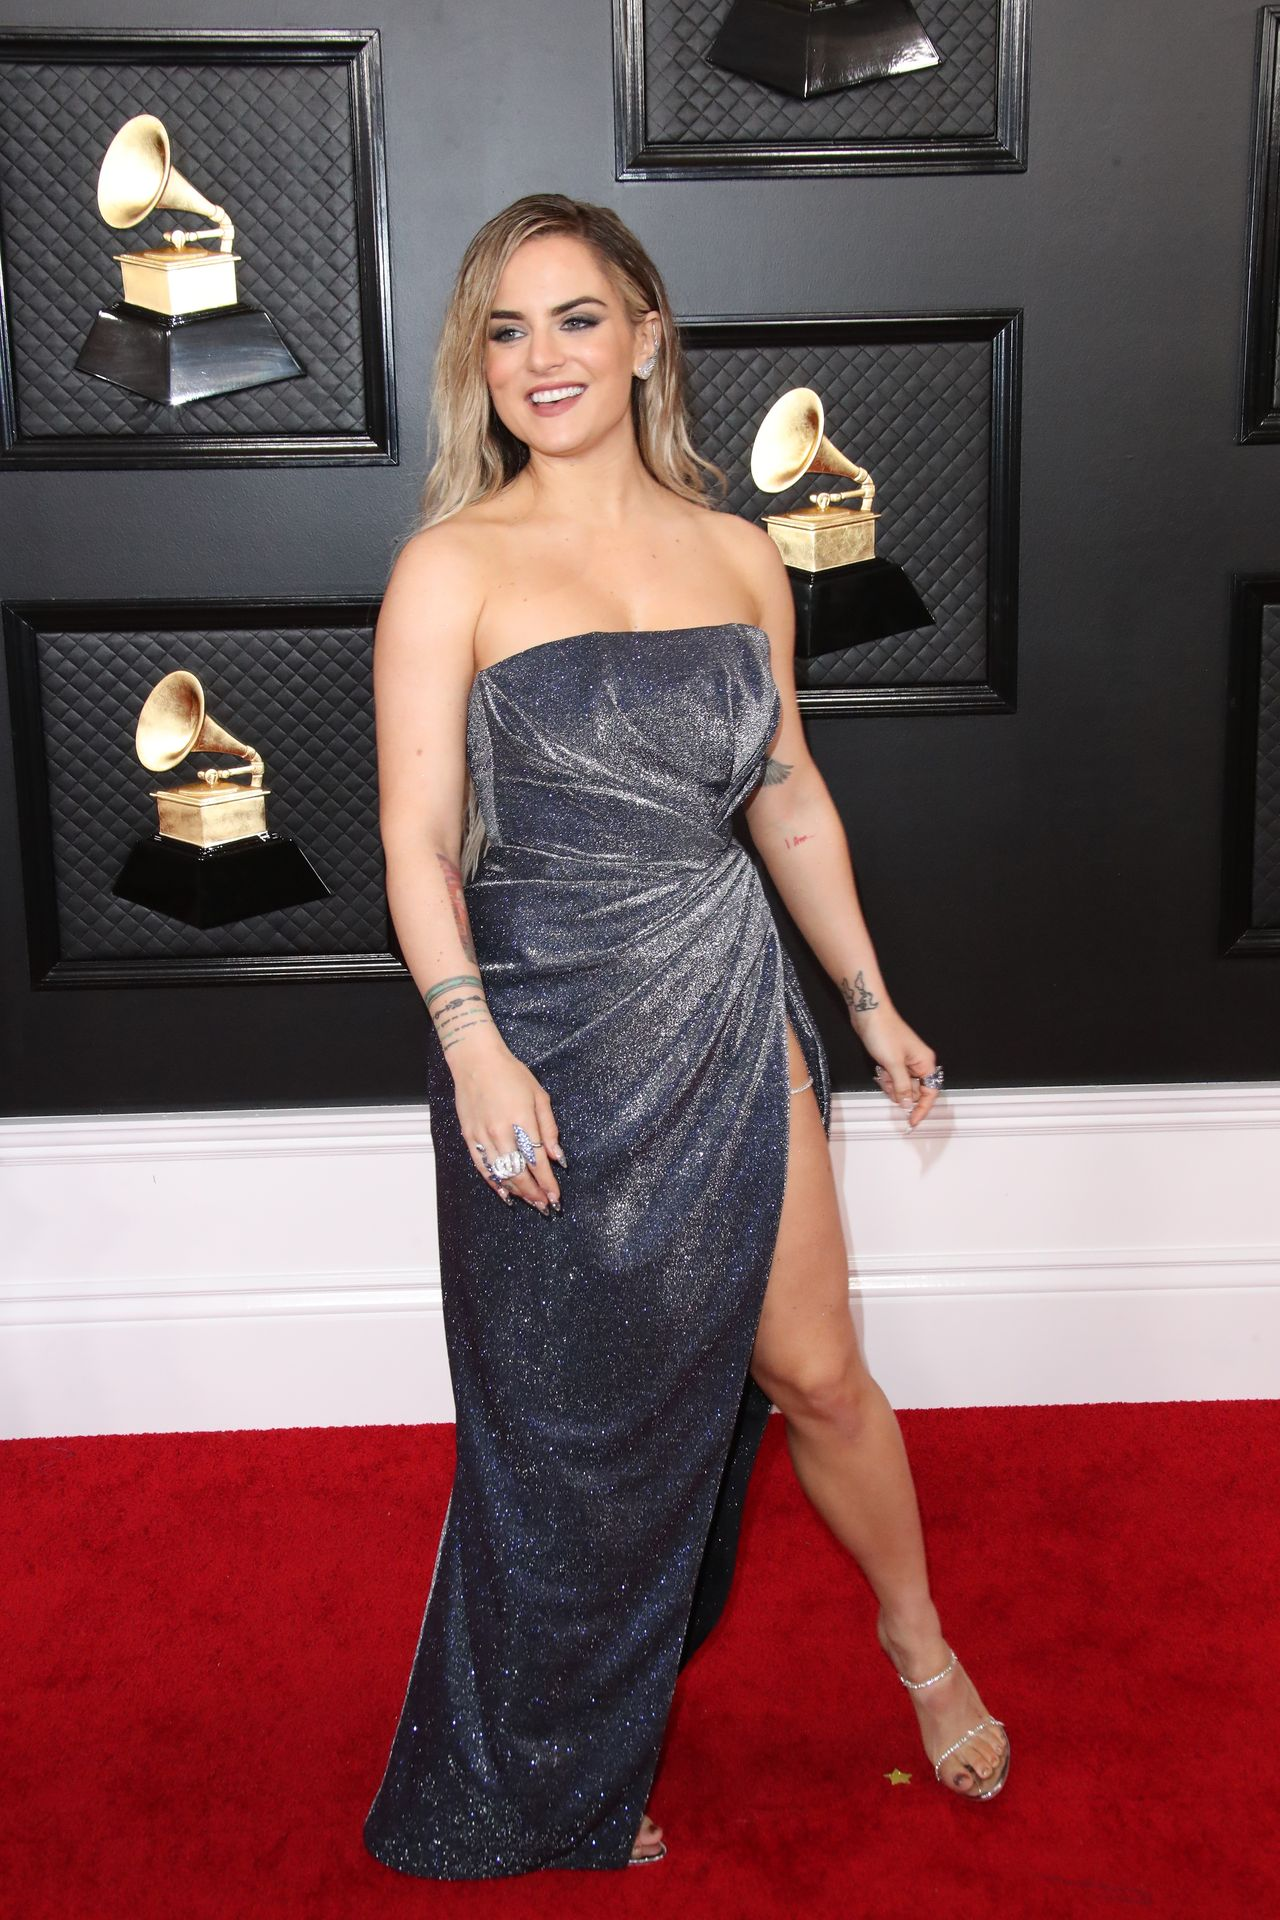 Jojo Shows Her Legs And Cleavage At The 62nd Annual Grammy Awards 0014